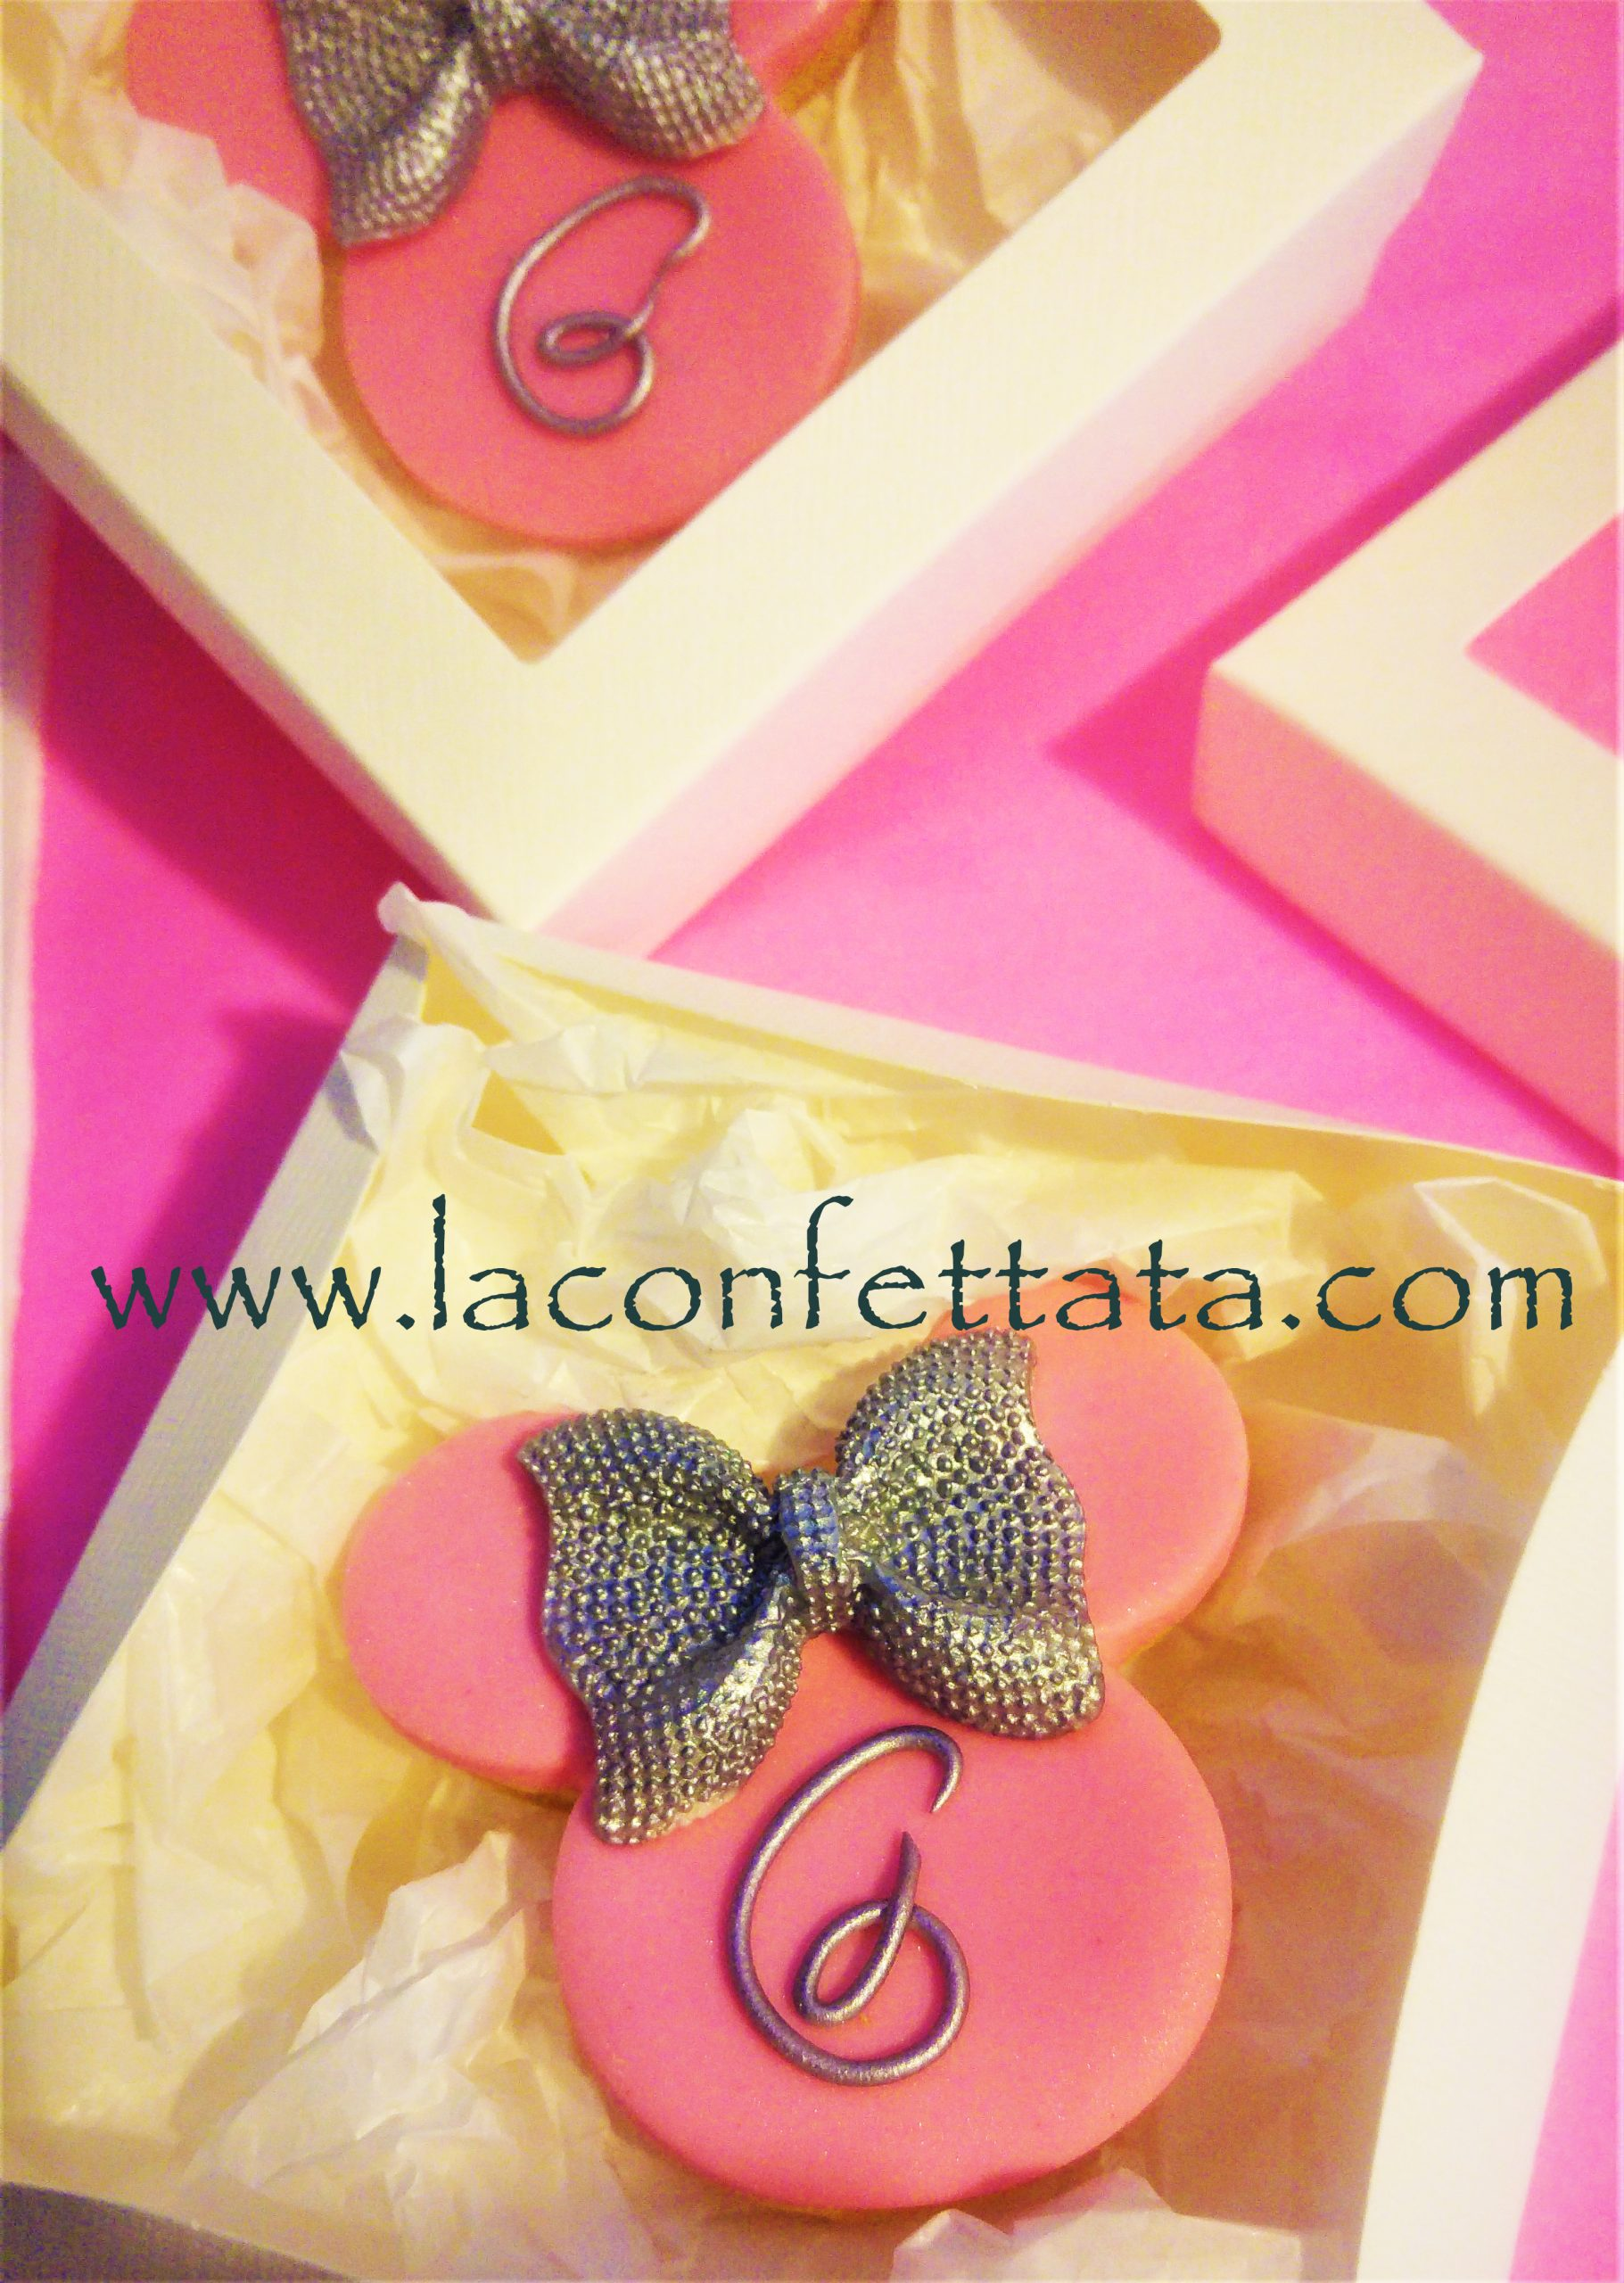 biscotti decorati minnie, biscotti battesimo minnie, battesimo elegante